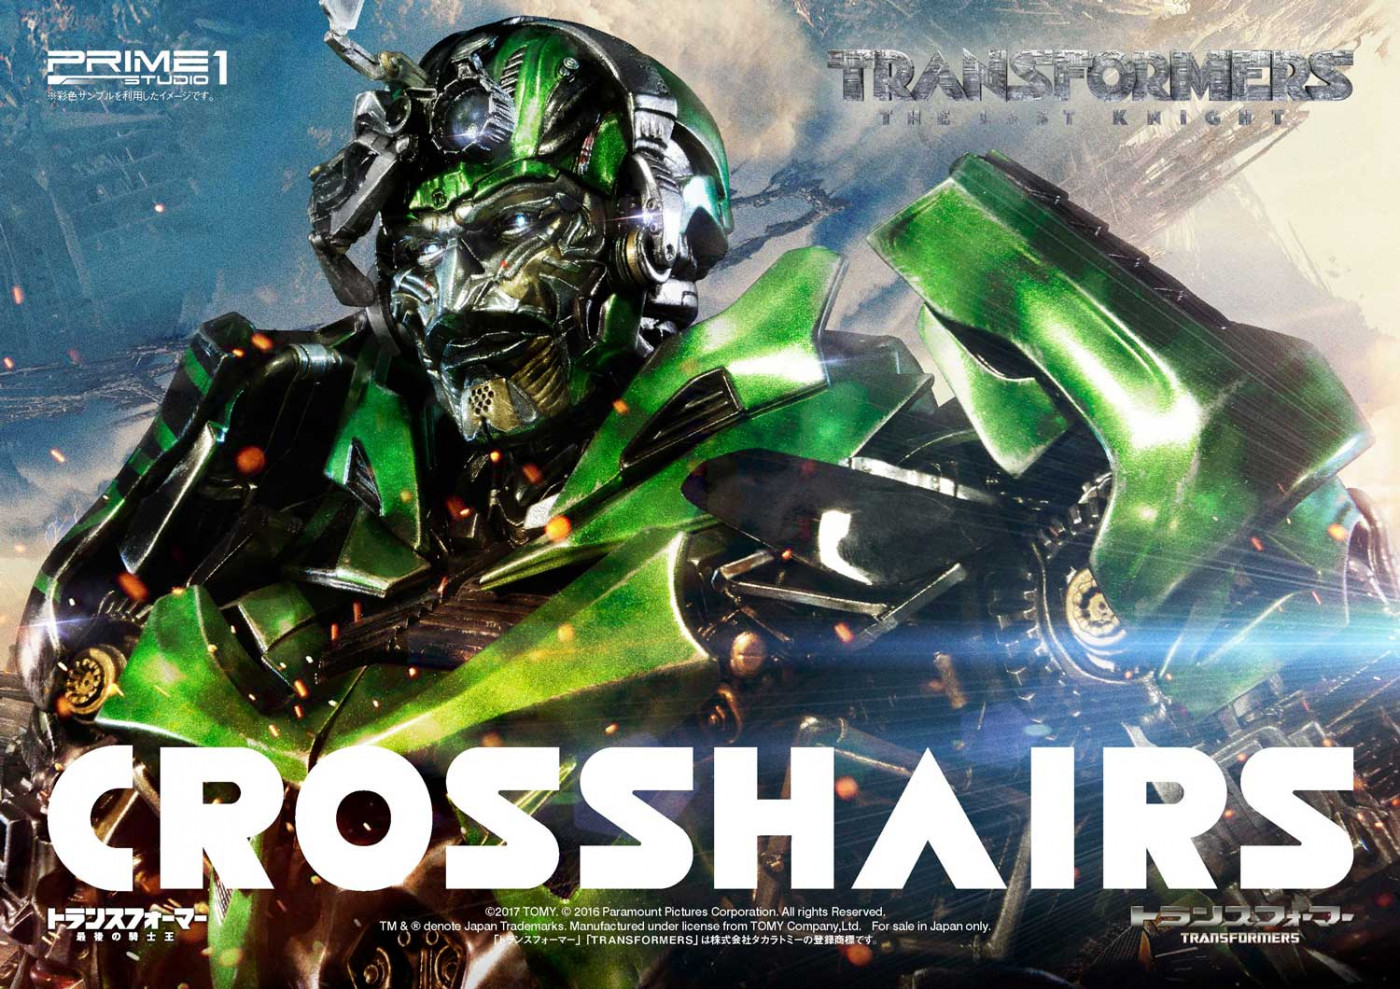 Museum Masterline Transformers: The Last Knight Autobot Crosshairs EX Version